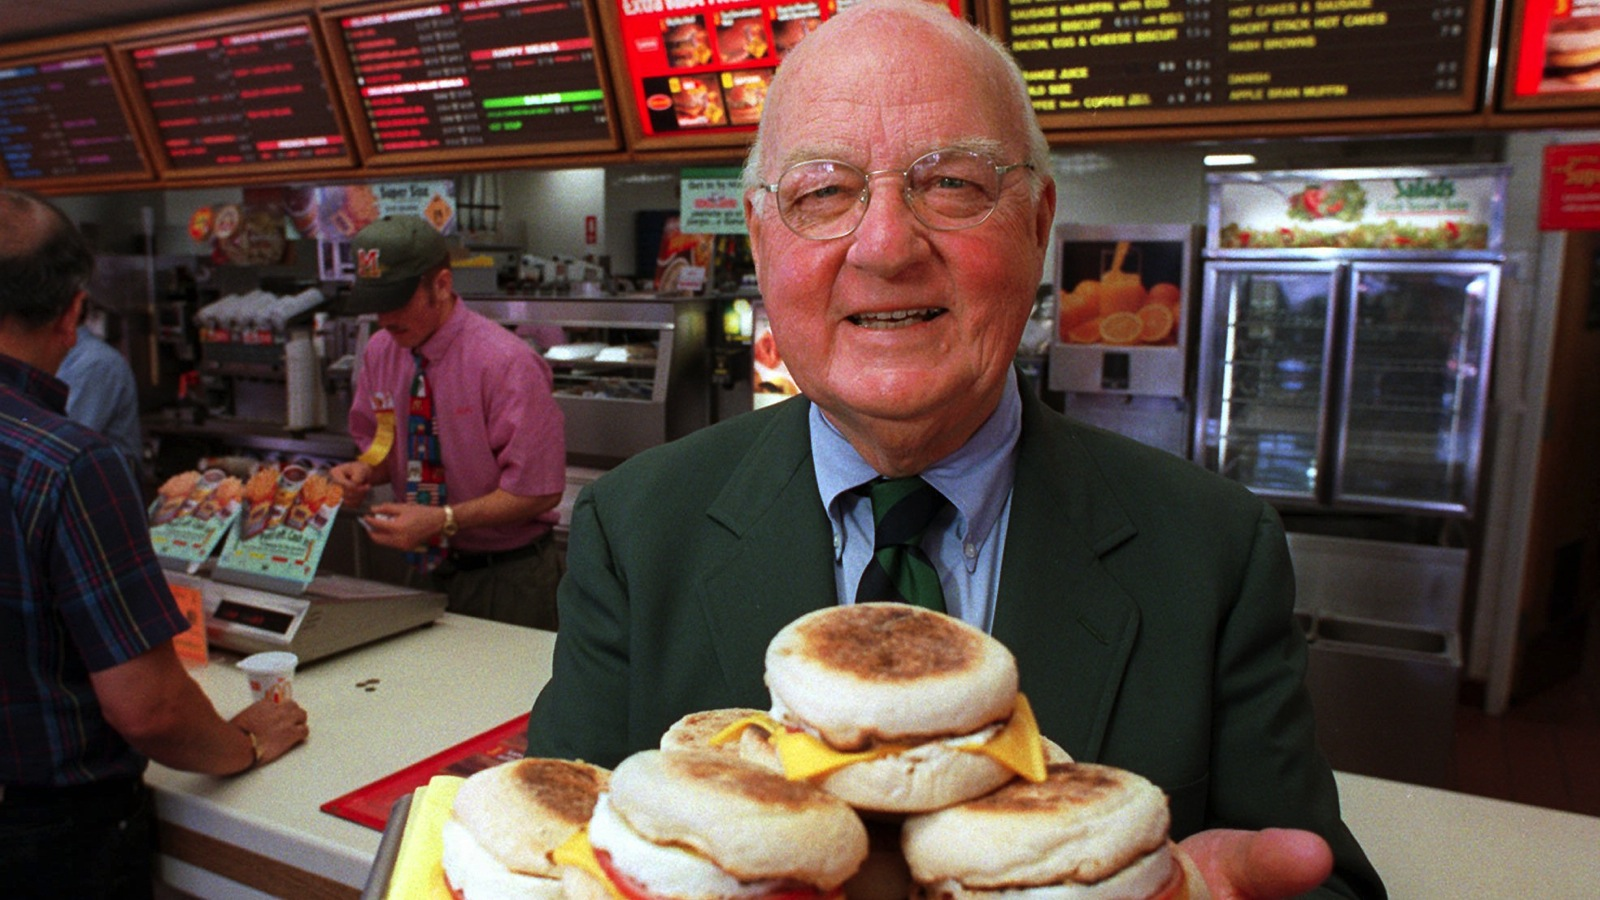 **FILE**Herb Peterson, the creator of the Egg McMuffin, shows off his invention in this April 1997 file photo, at one of his McDonald's franchises in Santa Barbara, Calif. Peterson, 89